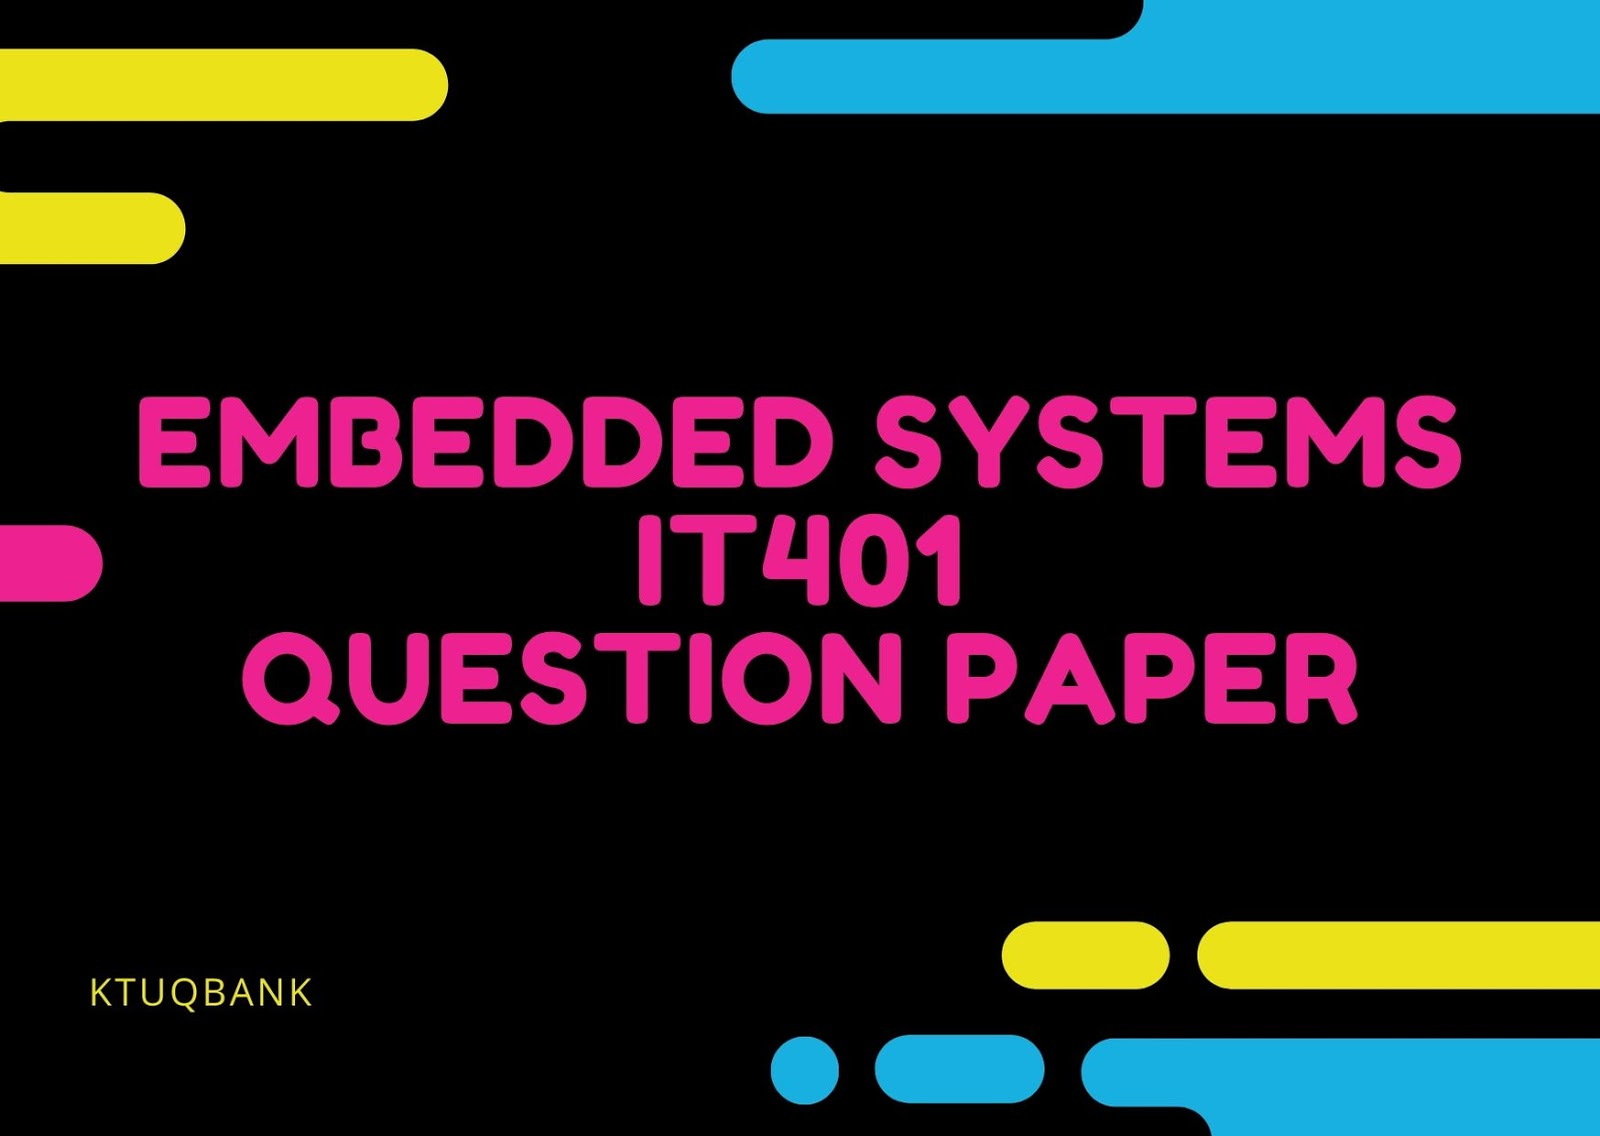 Embedded Systems | IT401 | Question Papers (2015 batch)